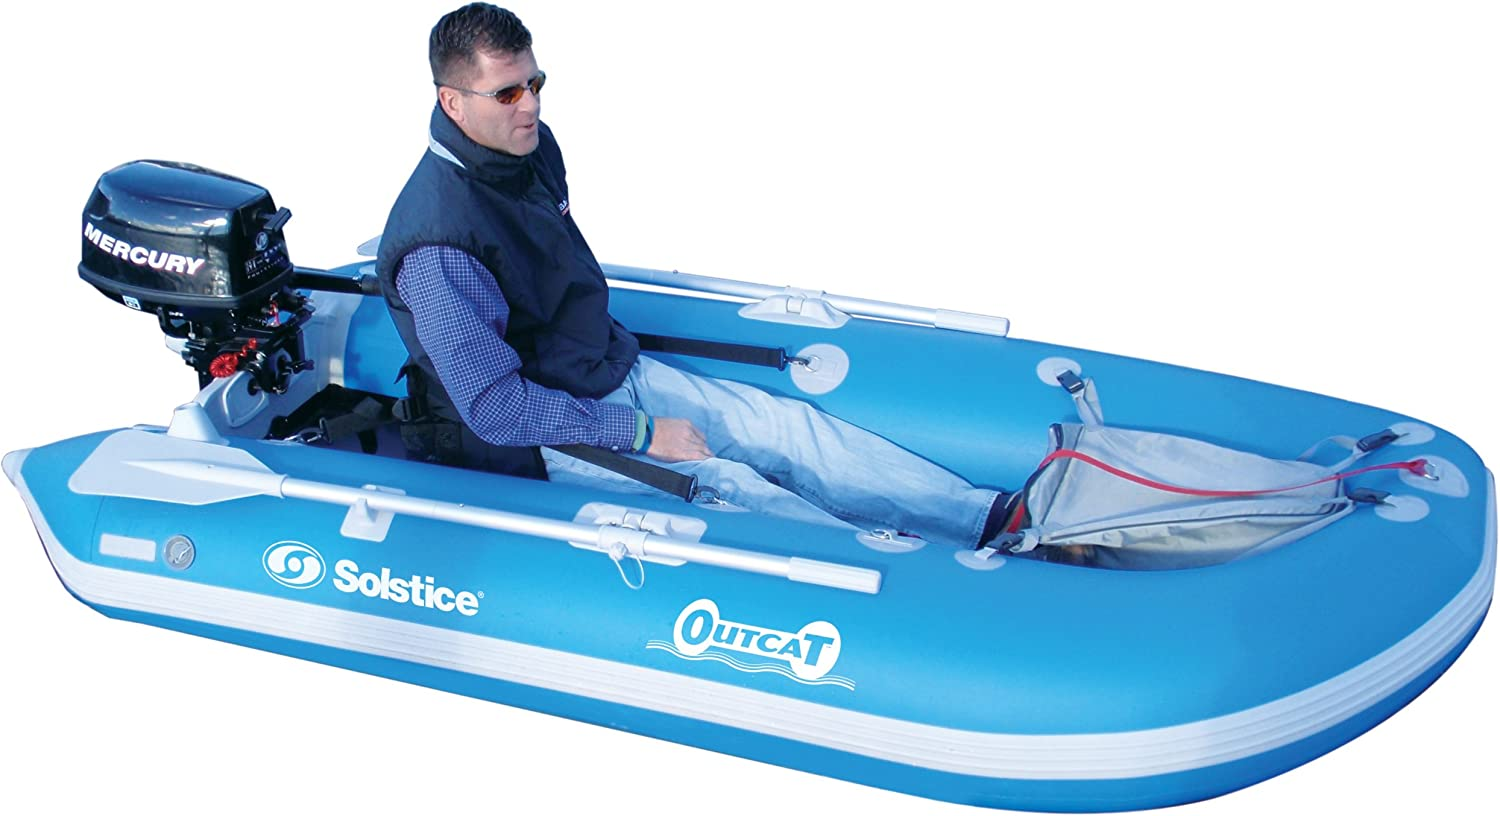 Solstice by Swimline Minneapolis Mall OutCat Fishing NEW before selling ☆ Catamaran Boat